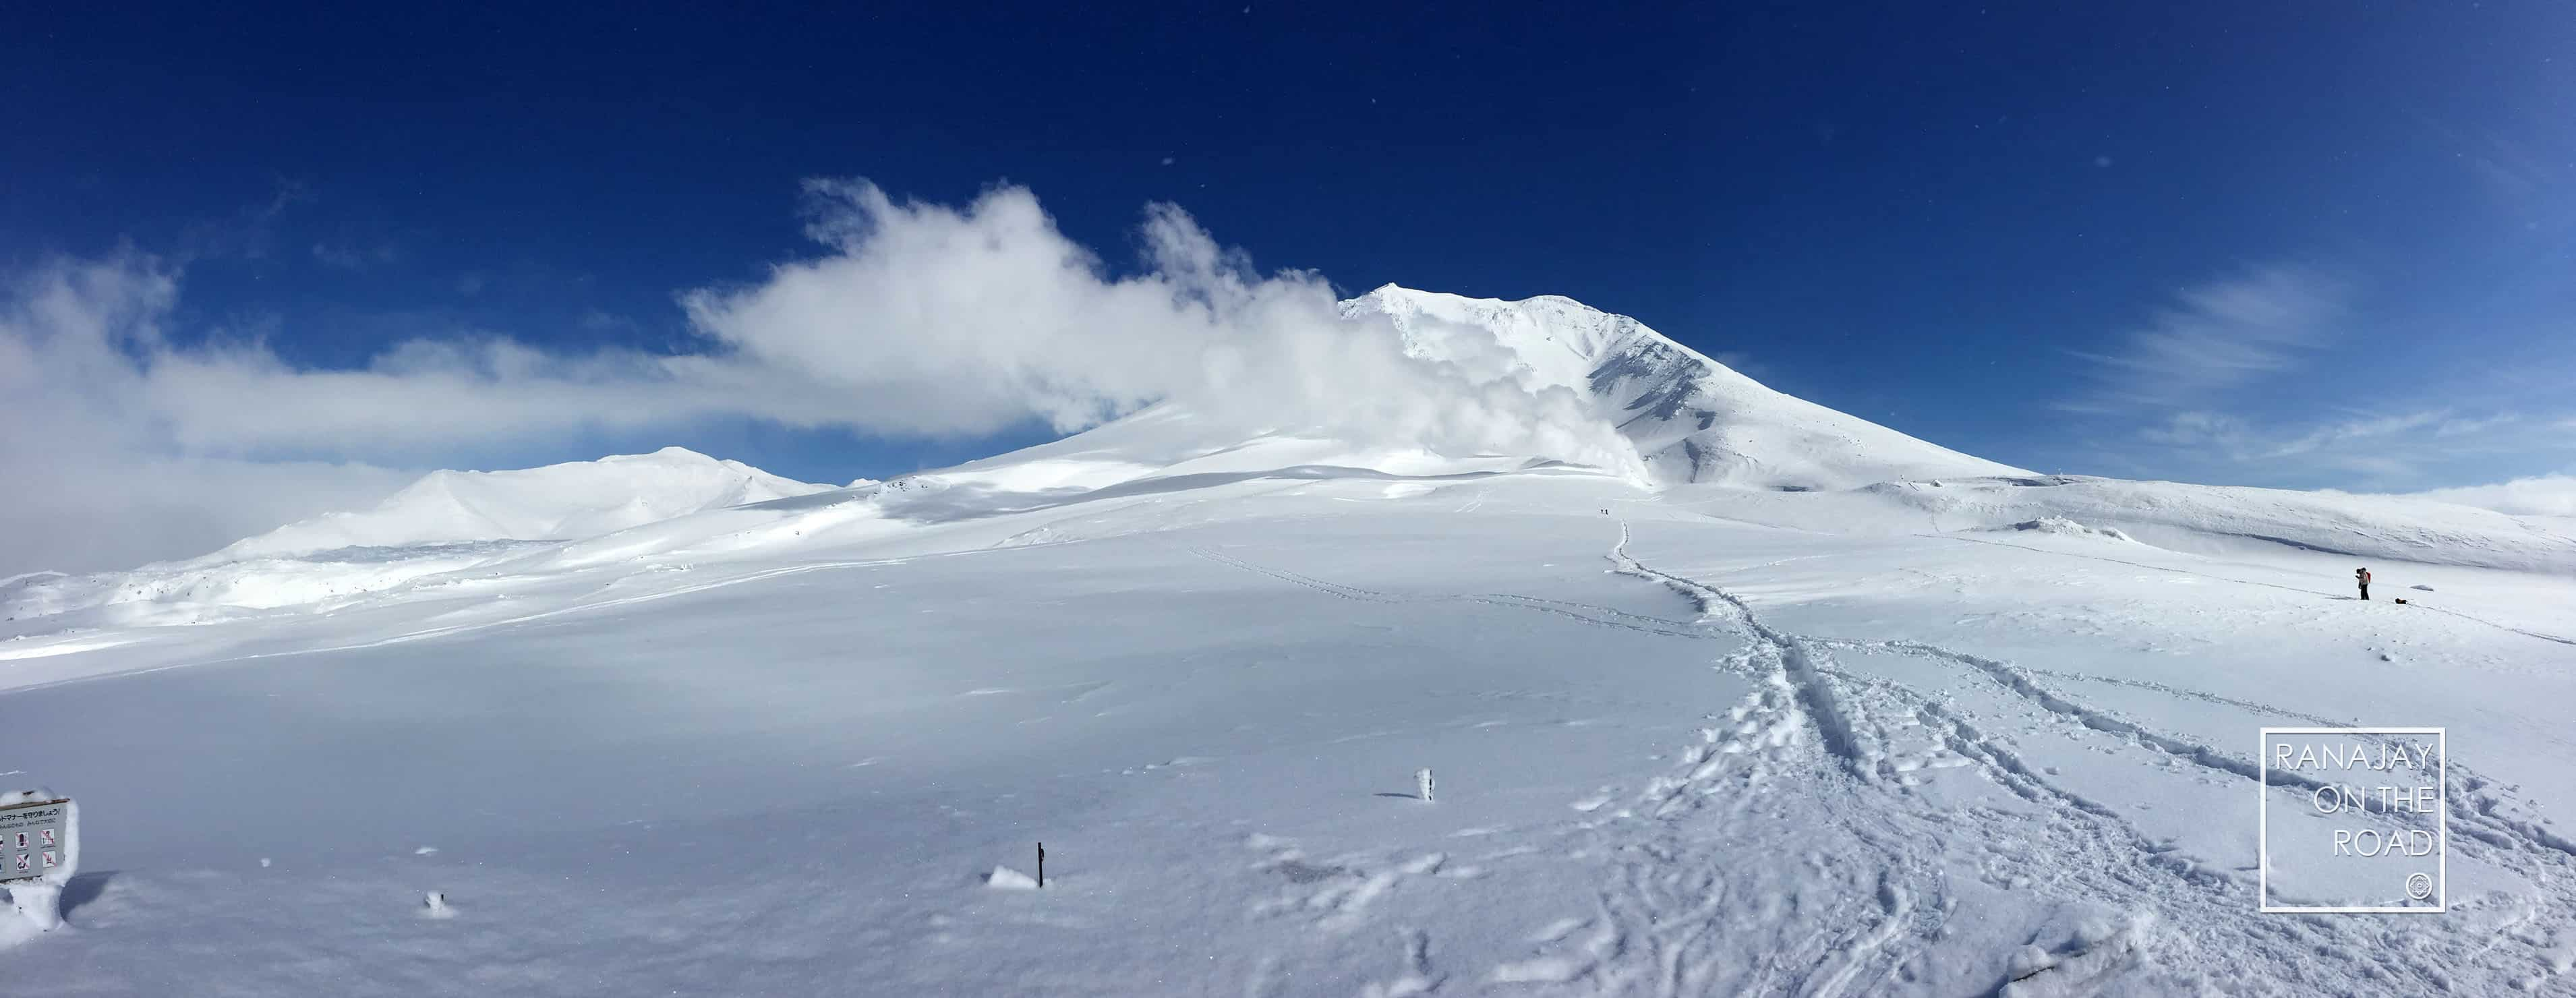 Panoramic view of Mount Asahi (Asahidake) covered in snow